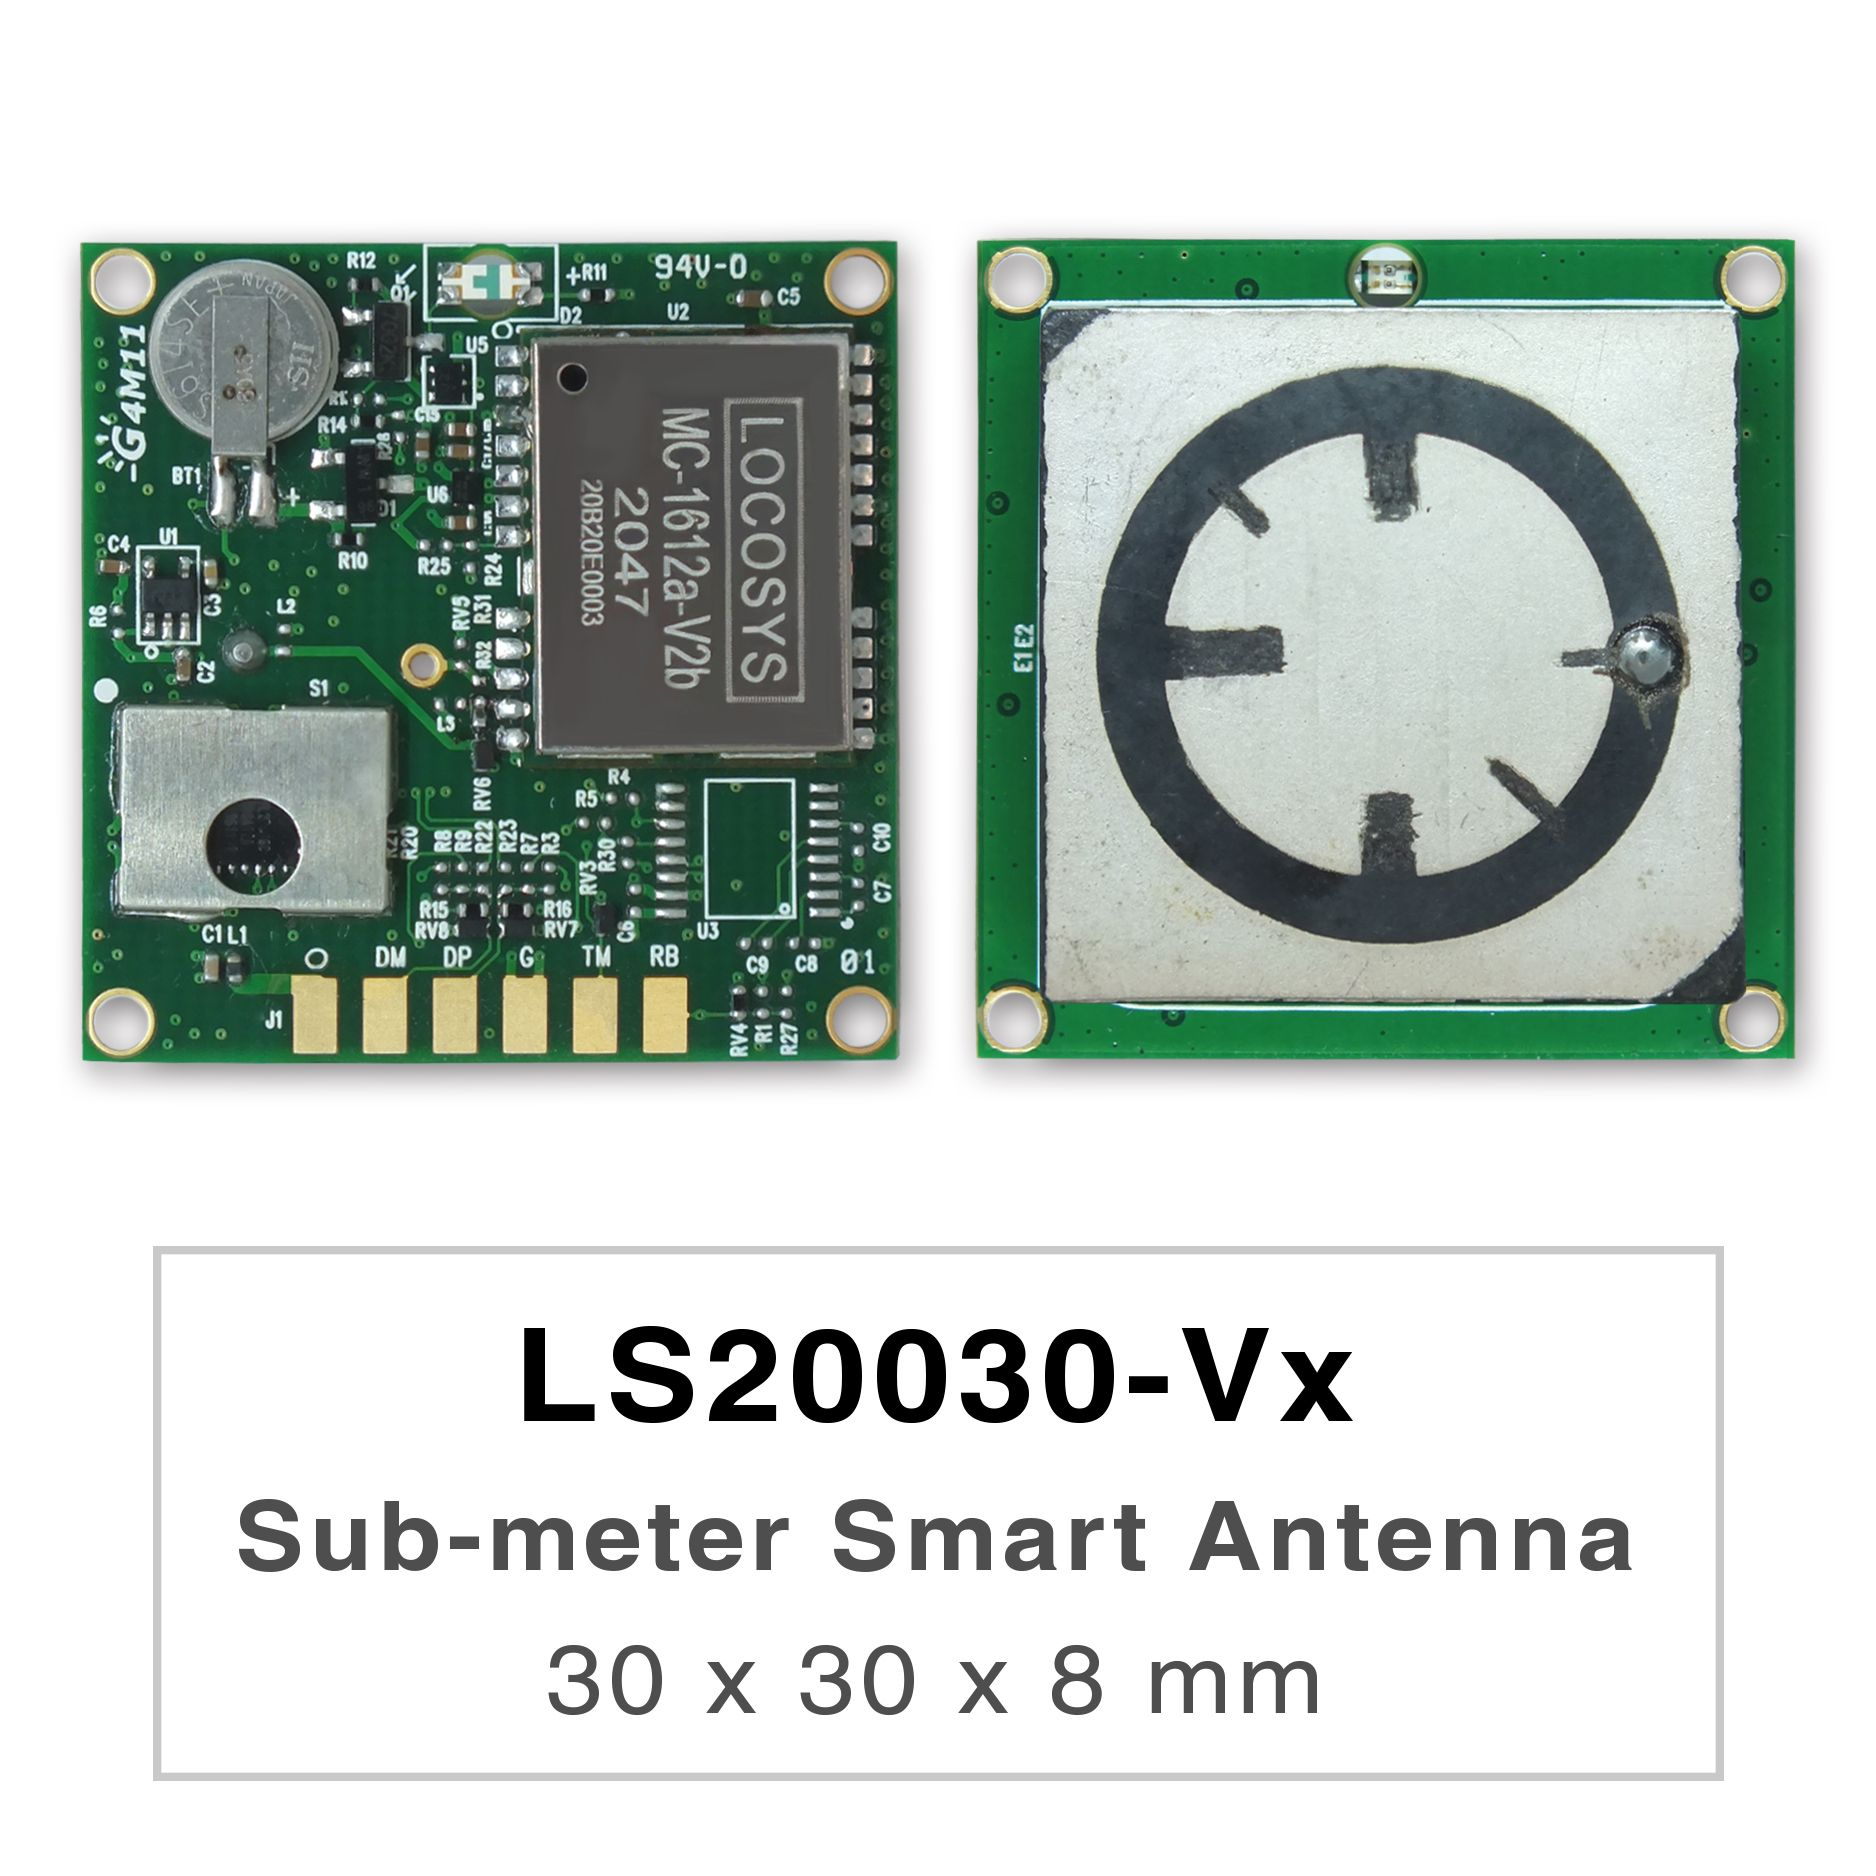 LS2003x-Vx series products are high-performance dual-band GNSS smart antenna modules, including an embedded antenna and GNSS receiver circuits, designed for a broad spectrum of OEM system applications.